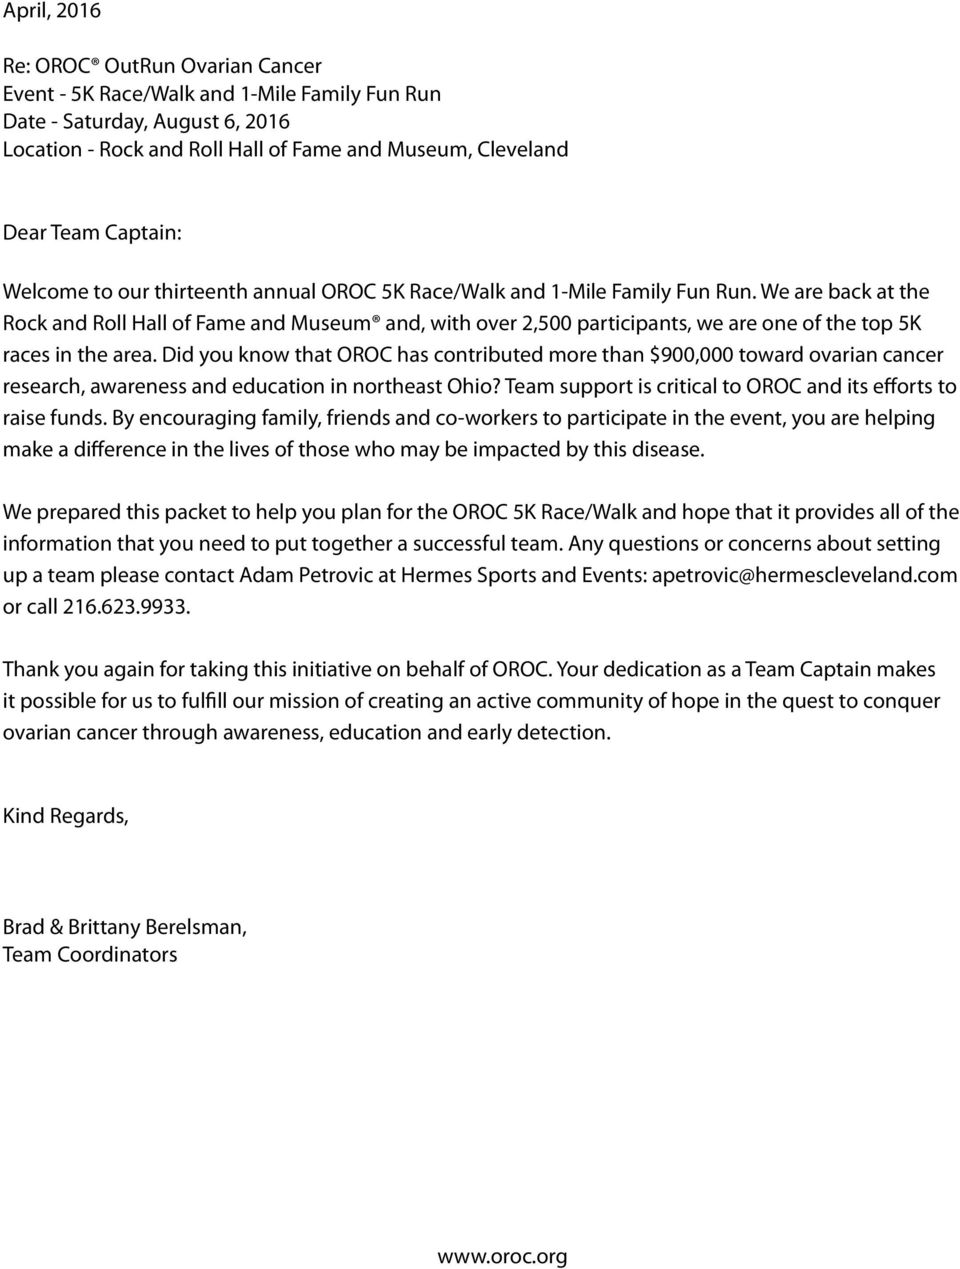 We are back at the Rock and Roll Hall of Fame and Museum and, with over 2,500 participants, we are one of the top 5K races in the area.